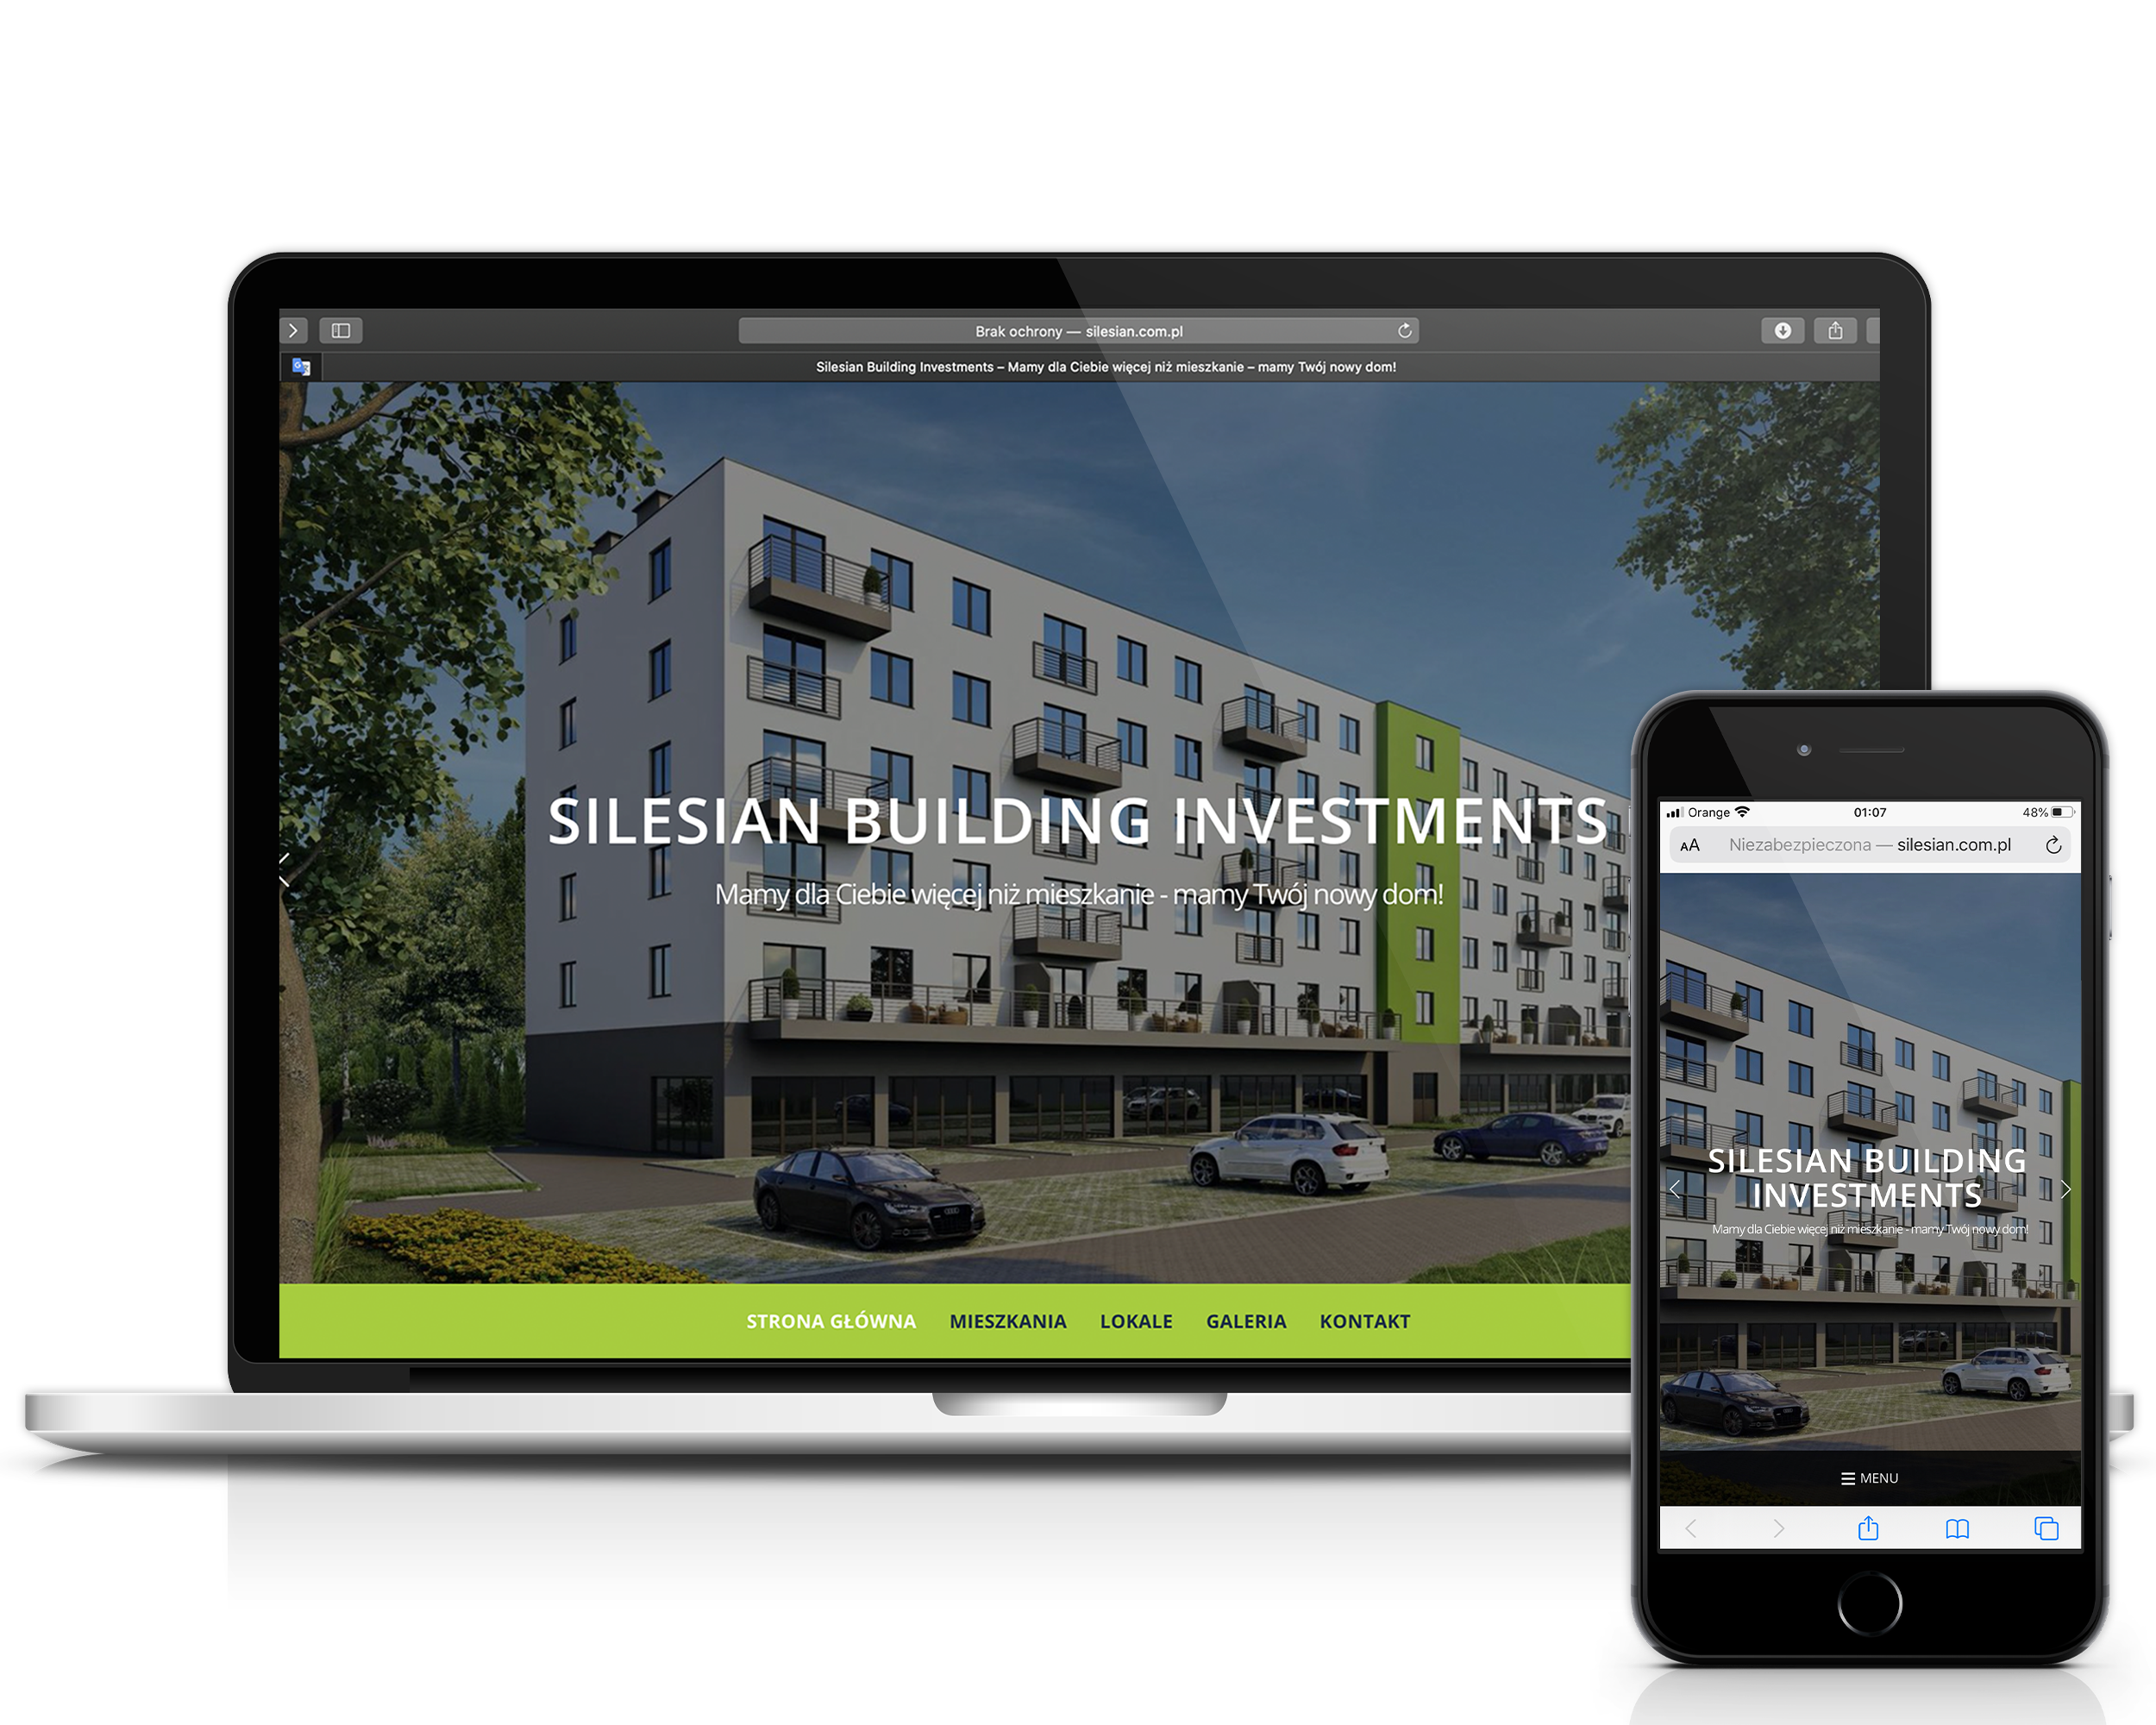 Silesian Building Investments strona internetowa